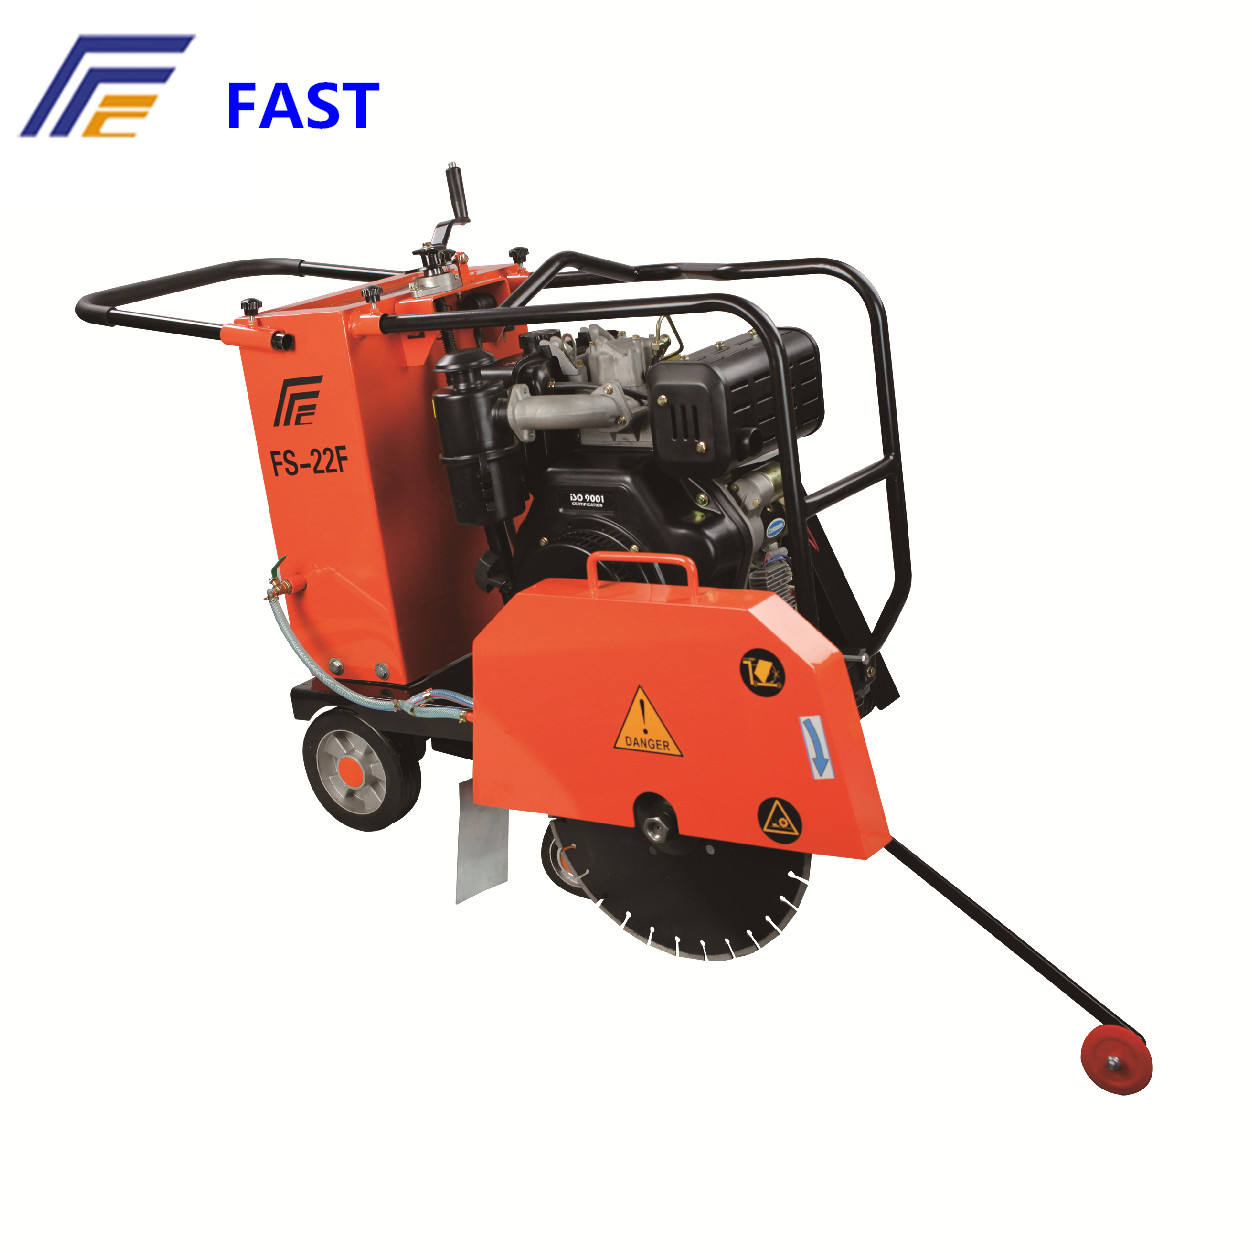 20'' concrete cutting saw machine with 13hp honda engine